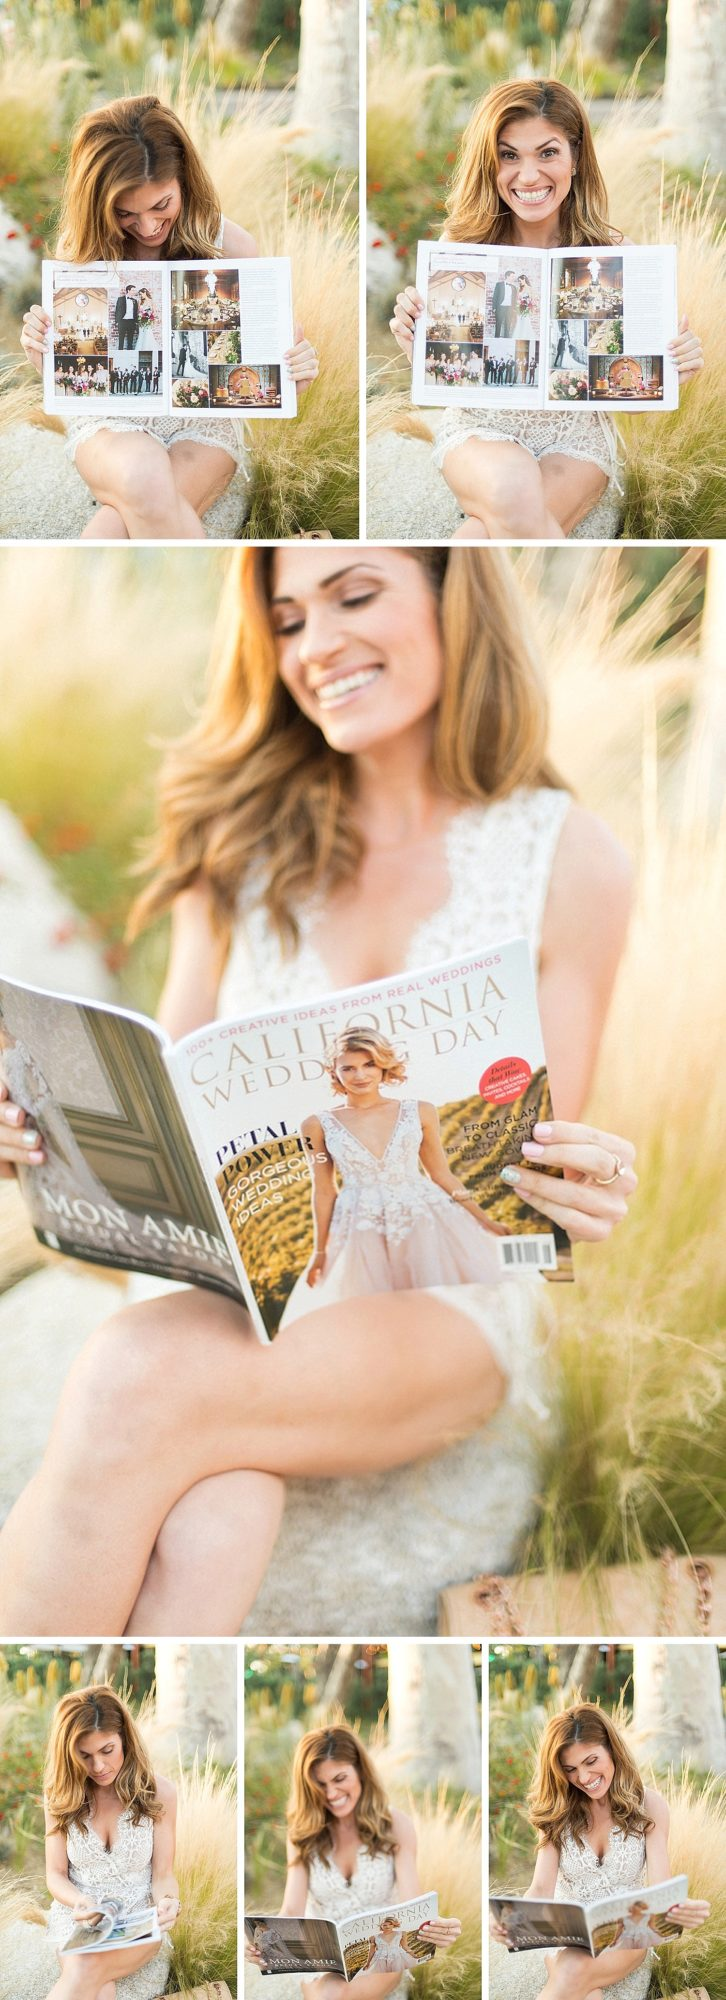 Hylah White Featured in California Wedding Day, real wedding, lorely meza